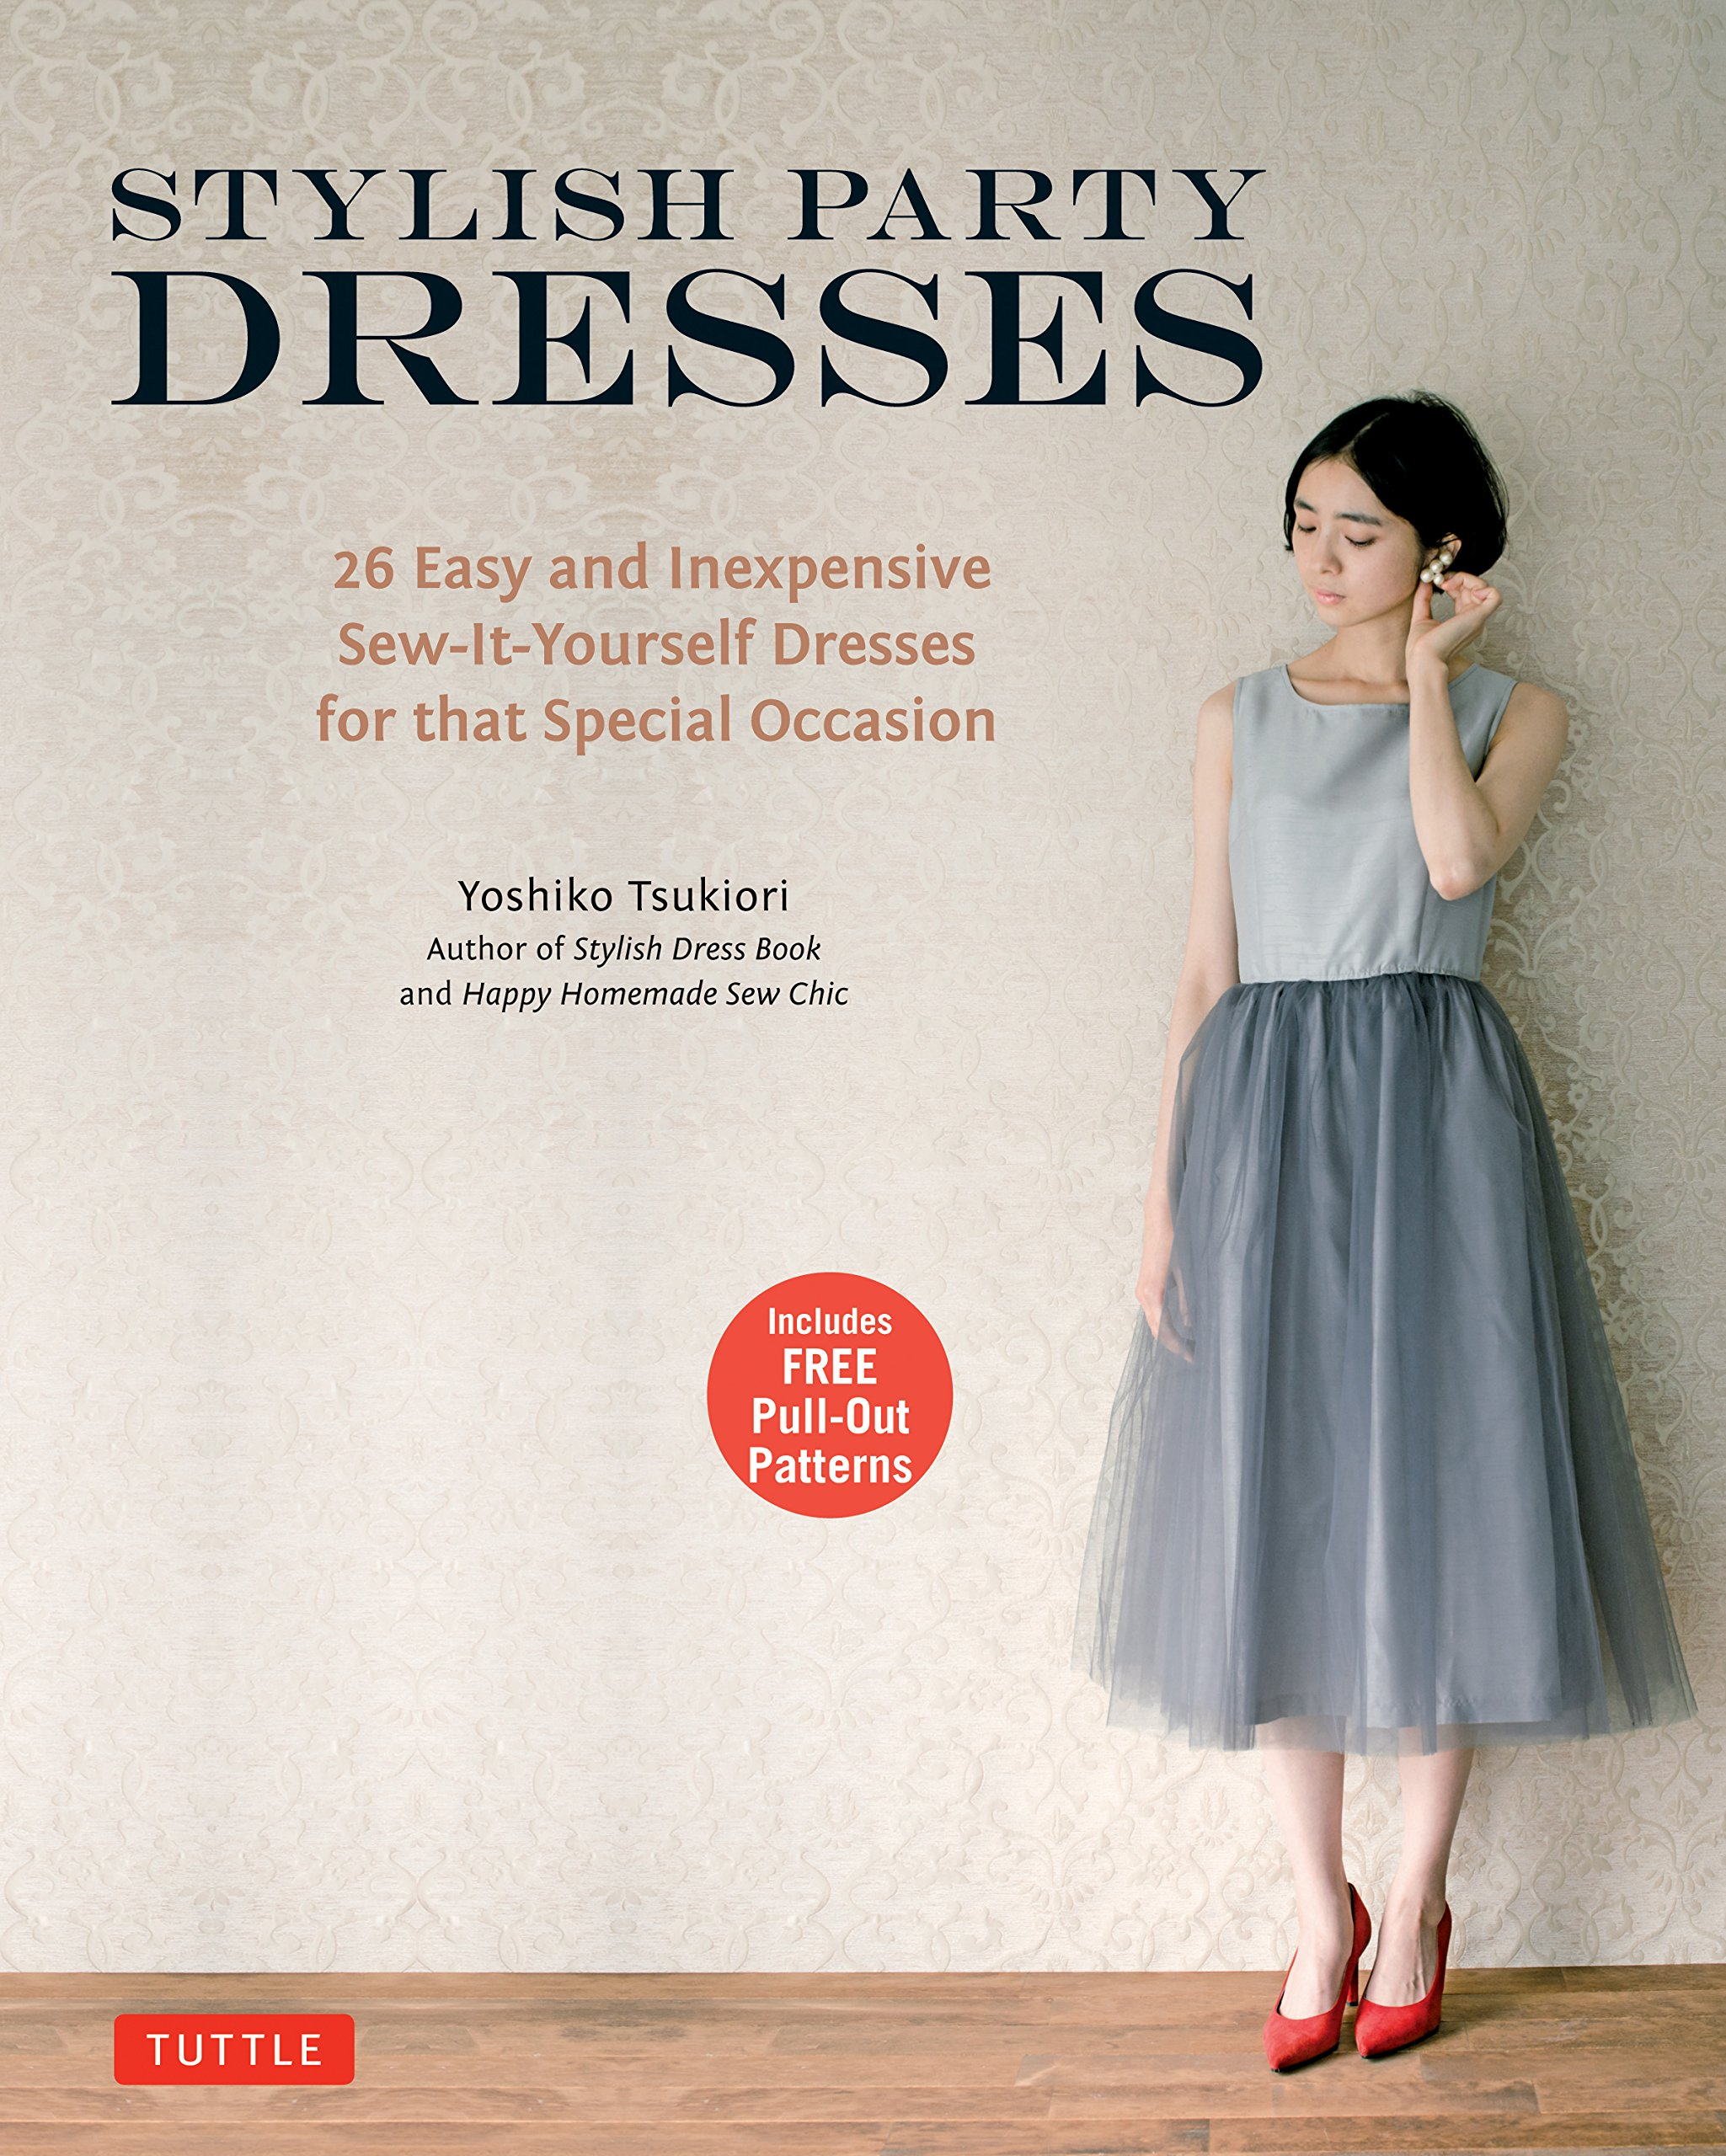 Stylish Party Dresses: 26 Easy and Inexpensive Sew-It-Yourself ...